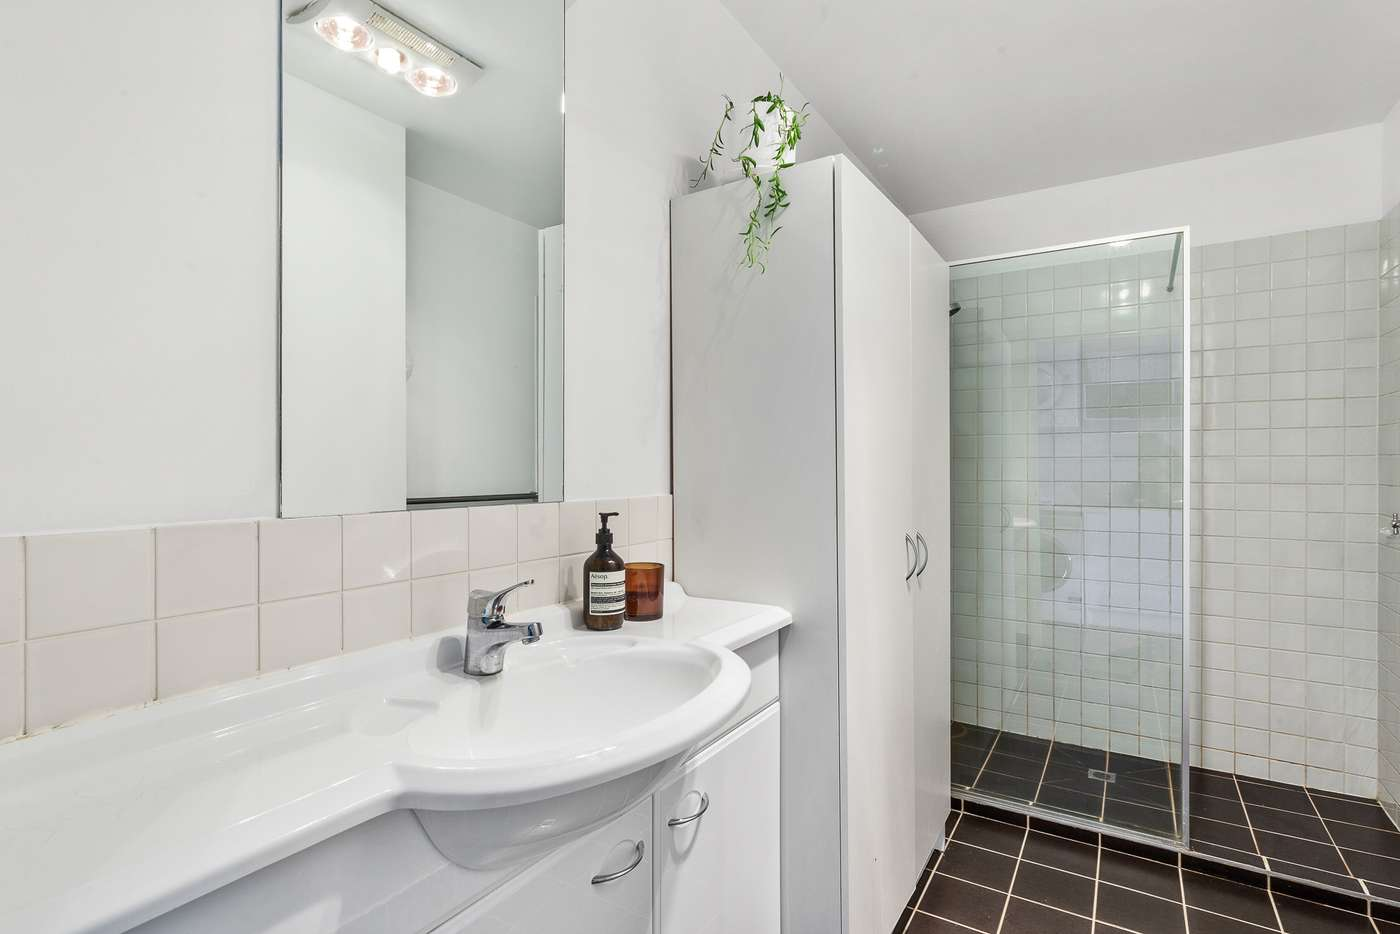 Fifth view of Homely apartment listing, 12/65 Westbury Street, St Kilda East VIC 3183